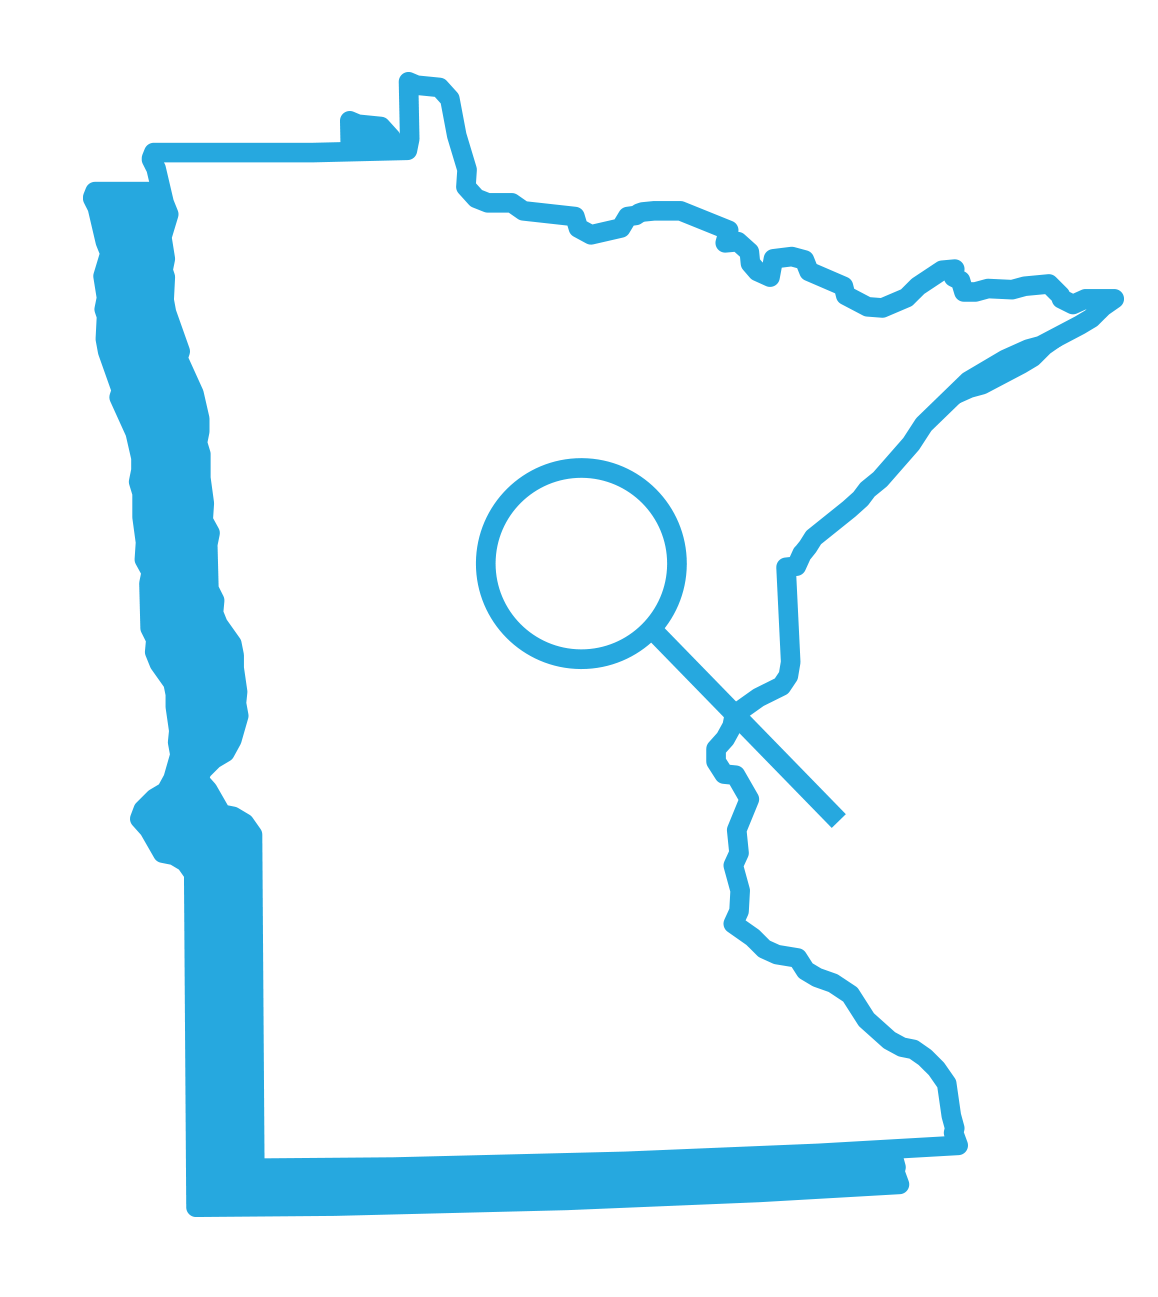 Outline of the State of Minnesota with a magnifying glass